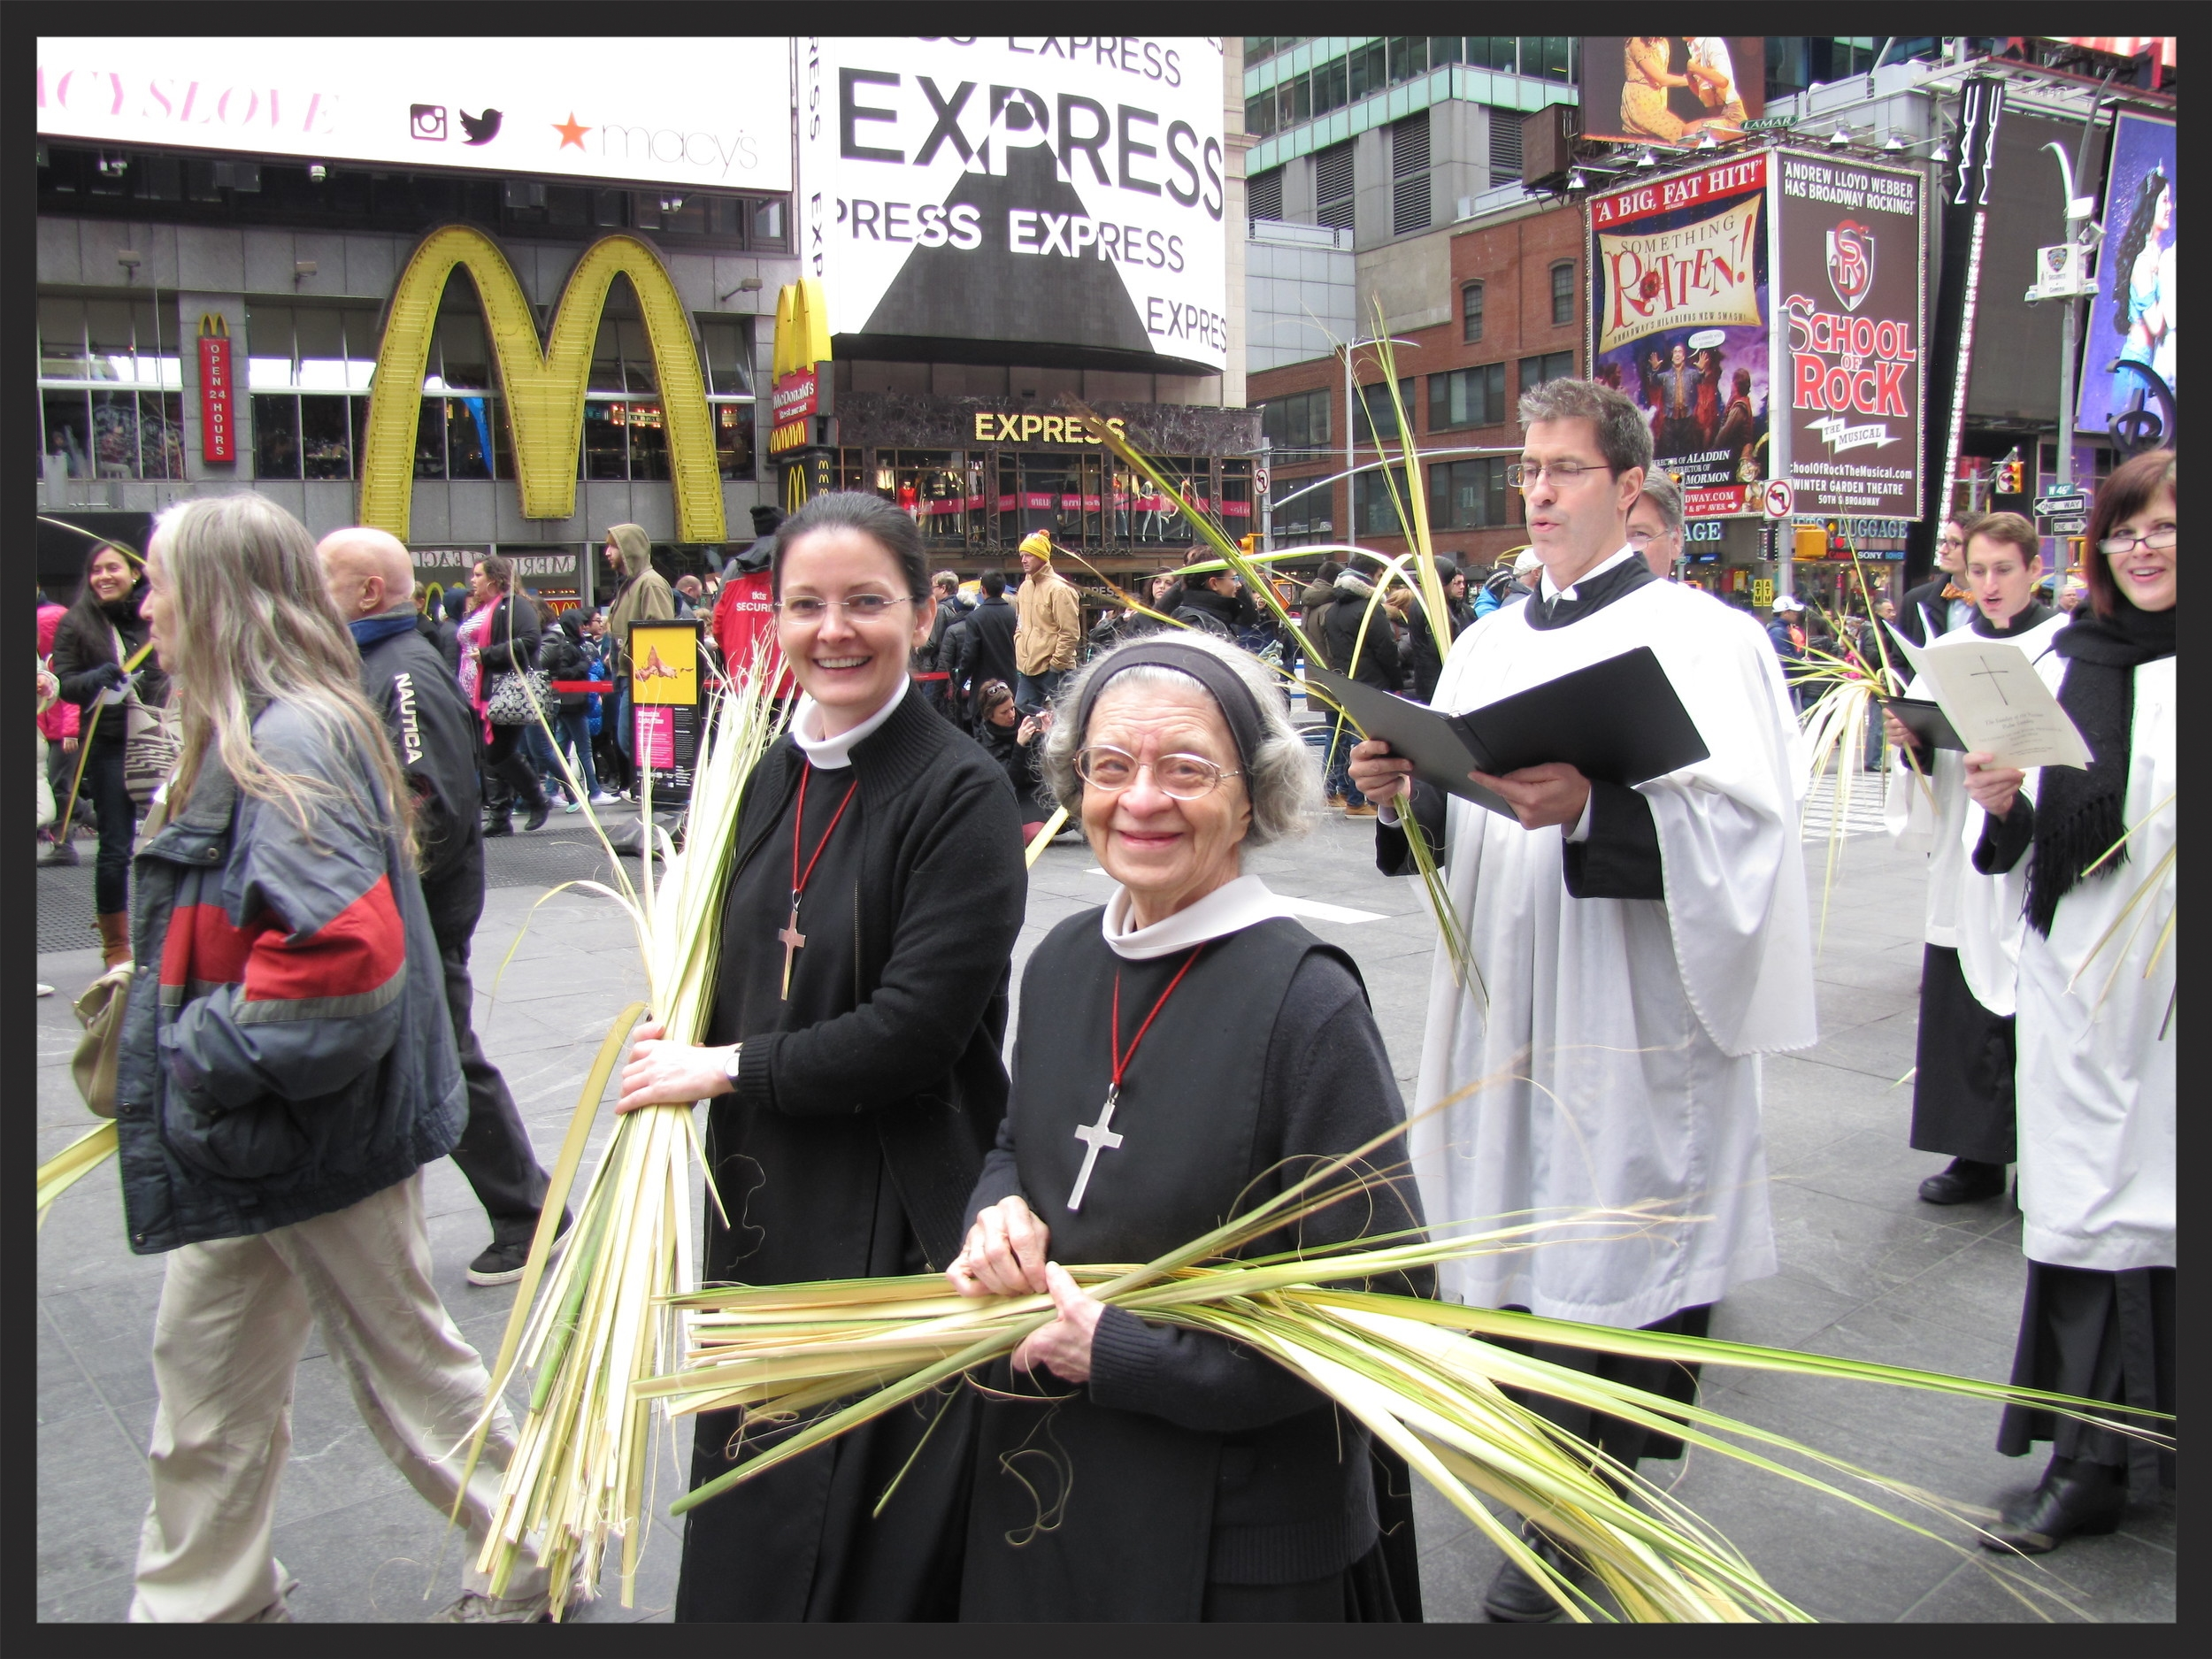 Sister Monica Clare, CSJB (L) and Sister Laura Katharine, CSJB (R) in the Palm Sunday processional through Times Square